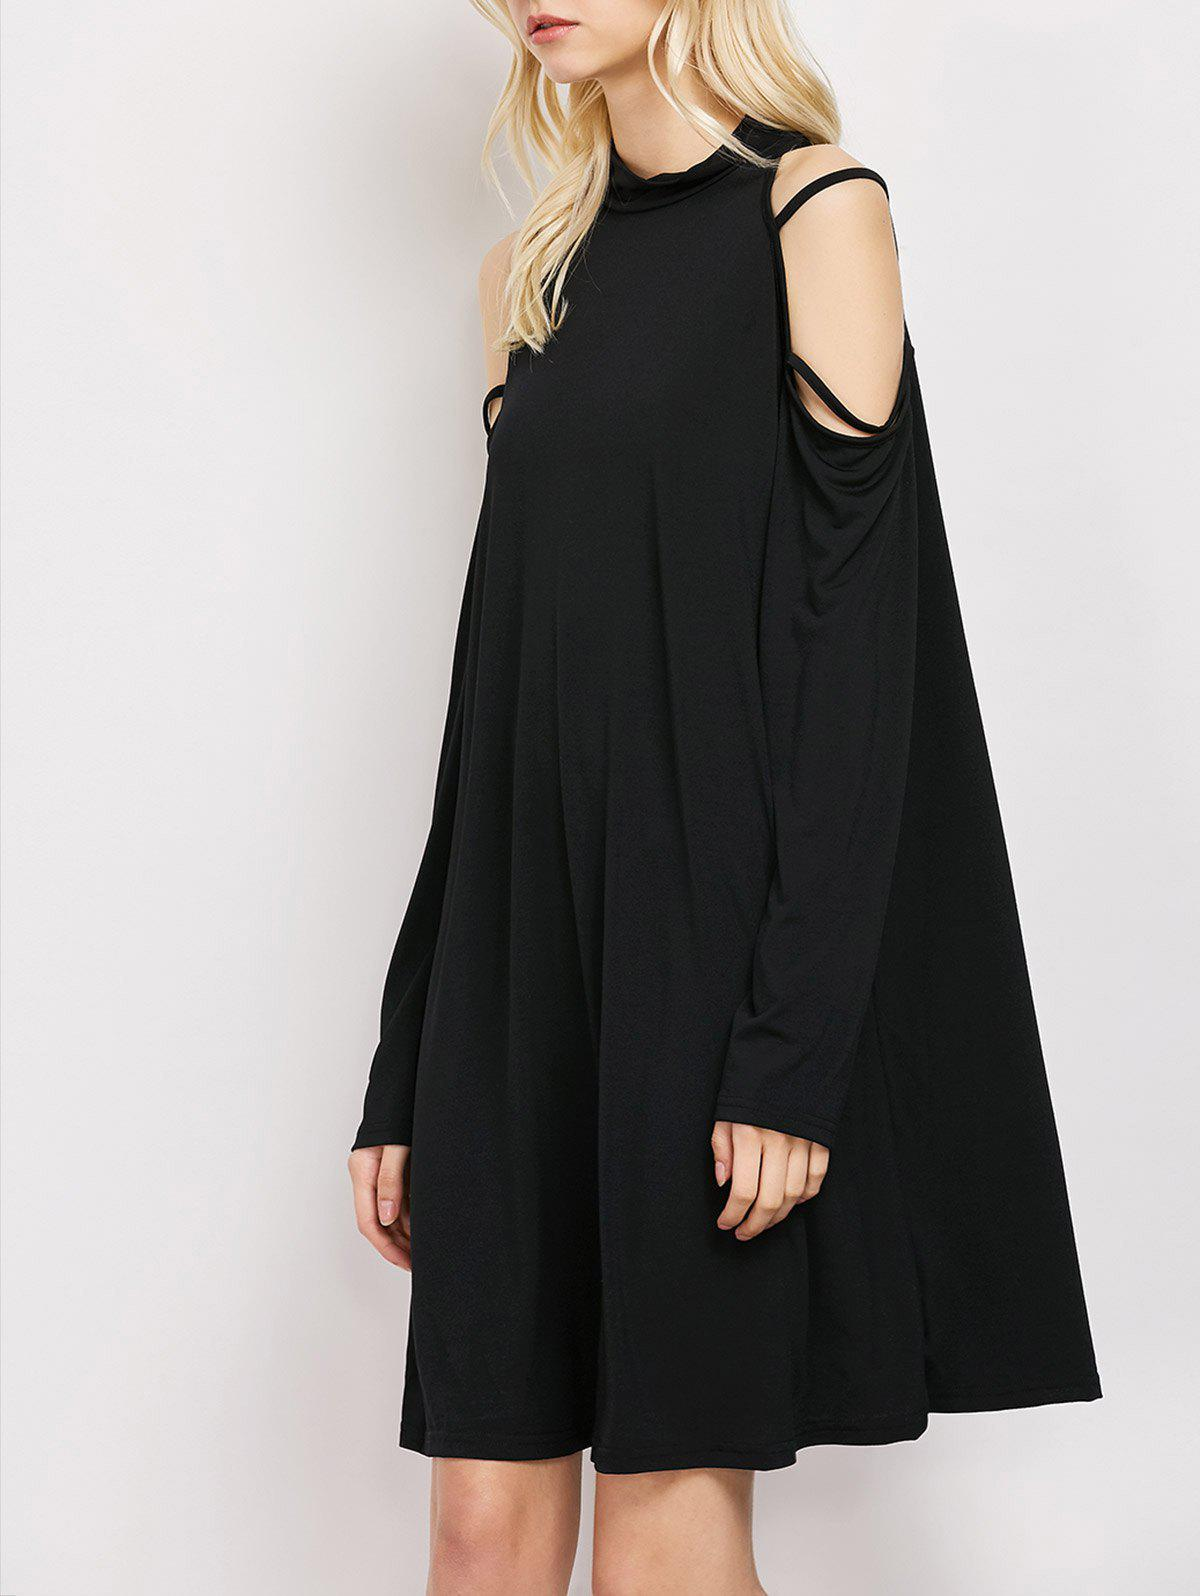 Cold Shoulder Strappy Loose Long Sleeve Dress - BLACK M